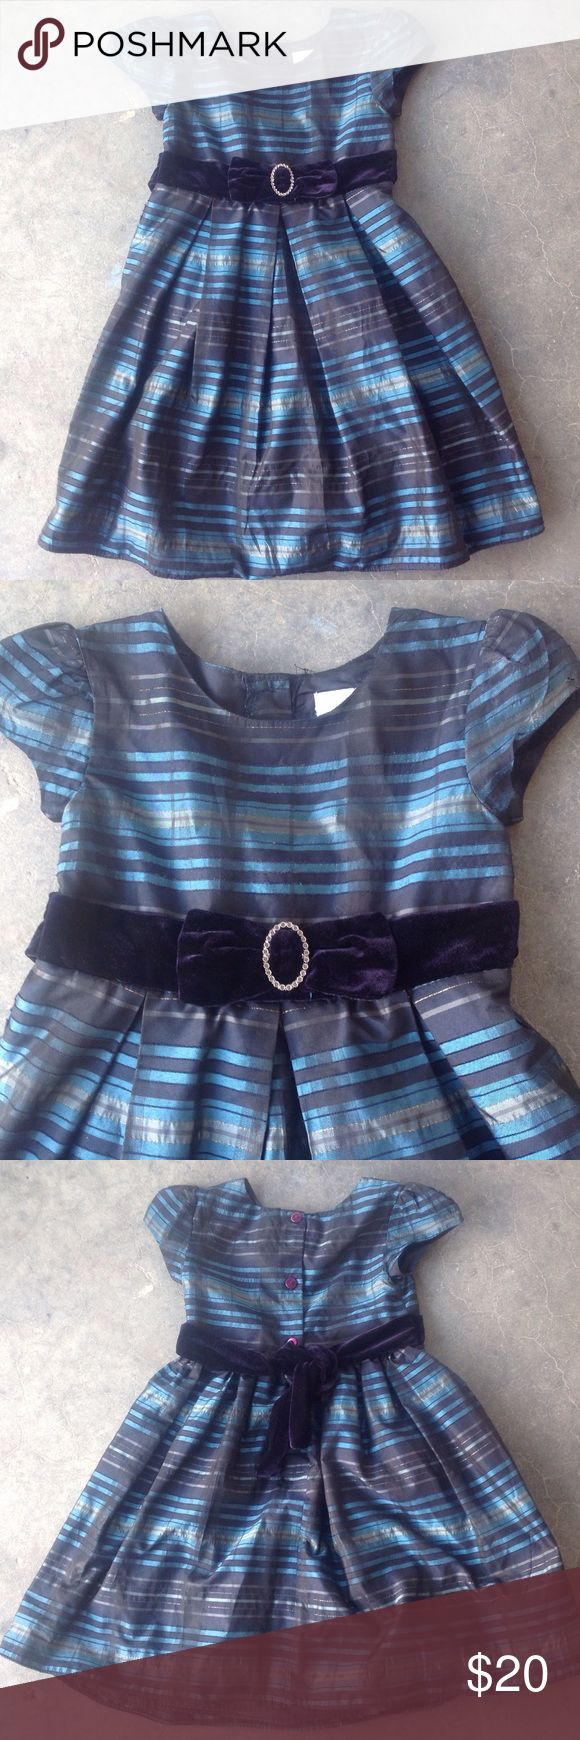 Perfectly Dressed Striped Formal Dress - 6X Teal, black stripes, gold threads shot throughout, short sleeves, velveteen sash and bow with rhinestone center, lined. 99% Polyester 1% Other Perfectly Dressed Dresses Formal